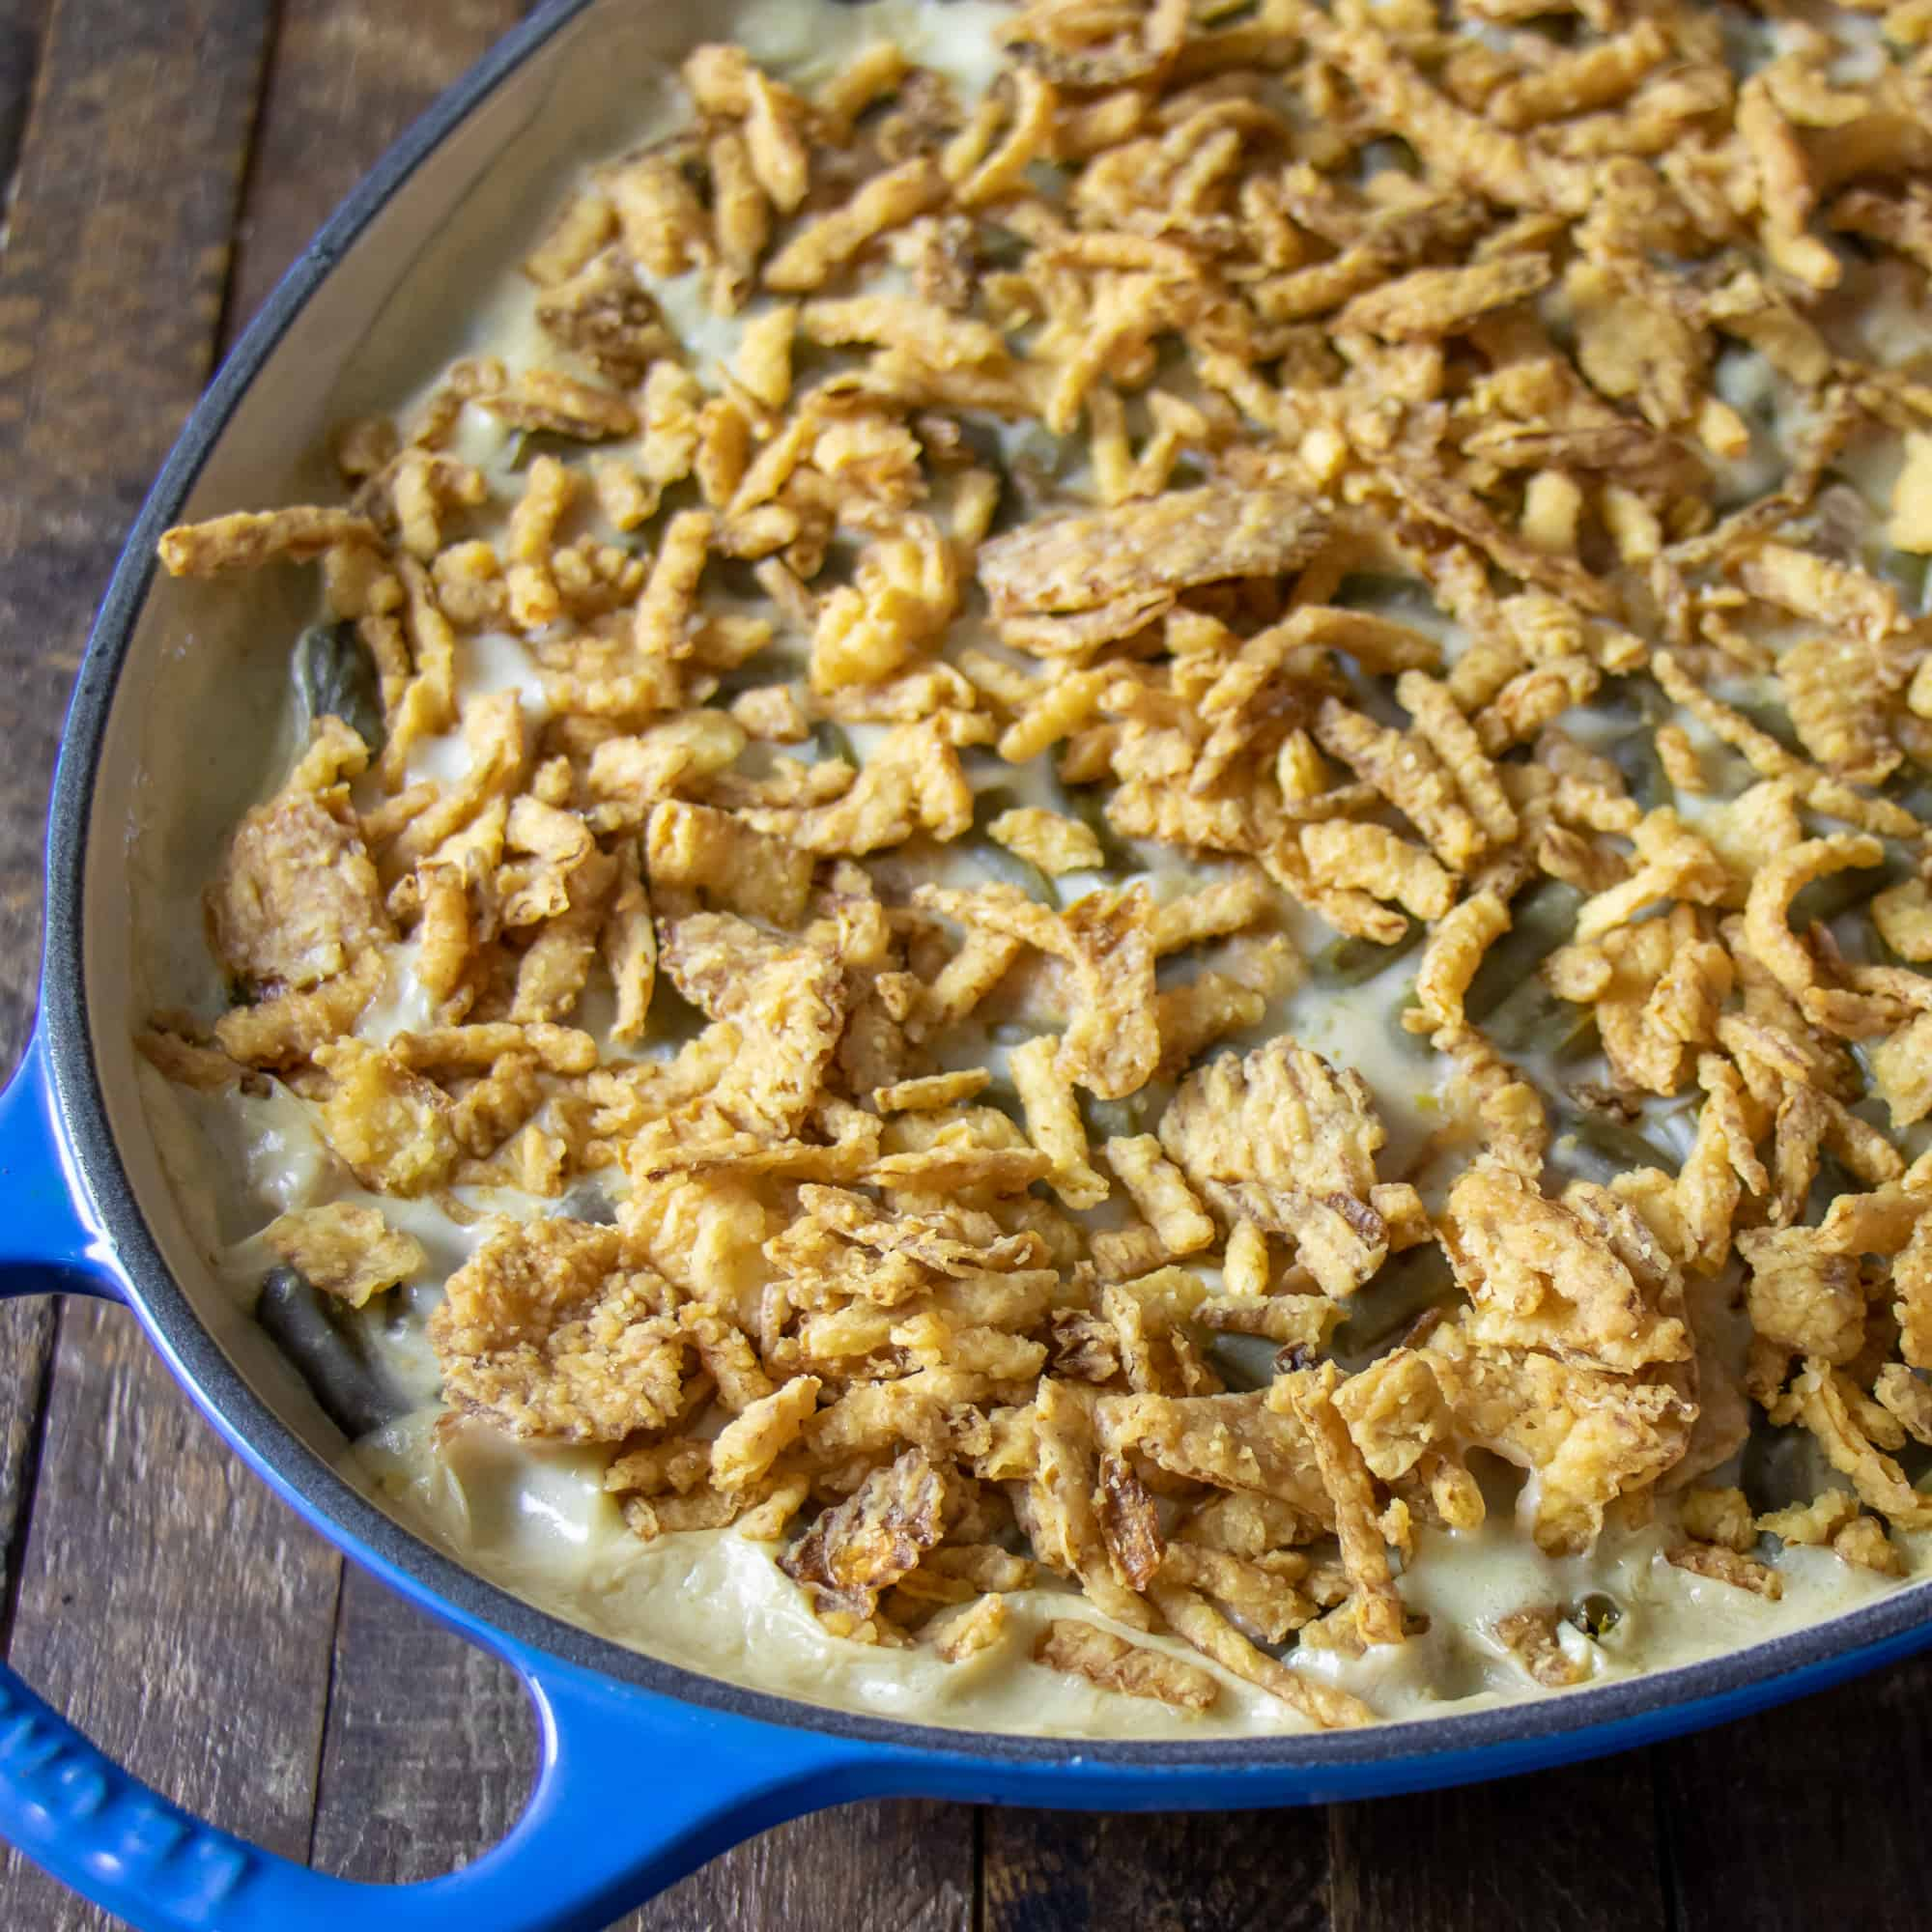 Finish with some more of the fried onions.